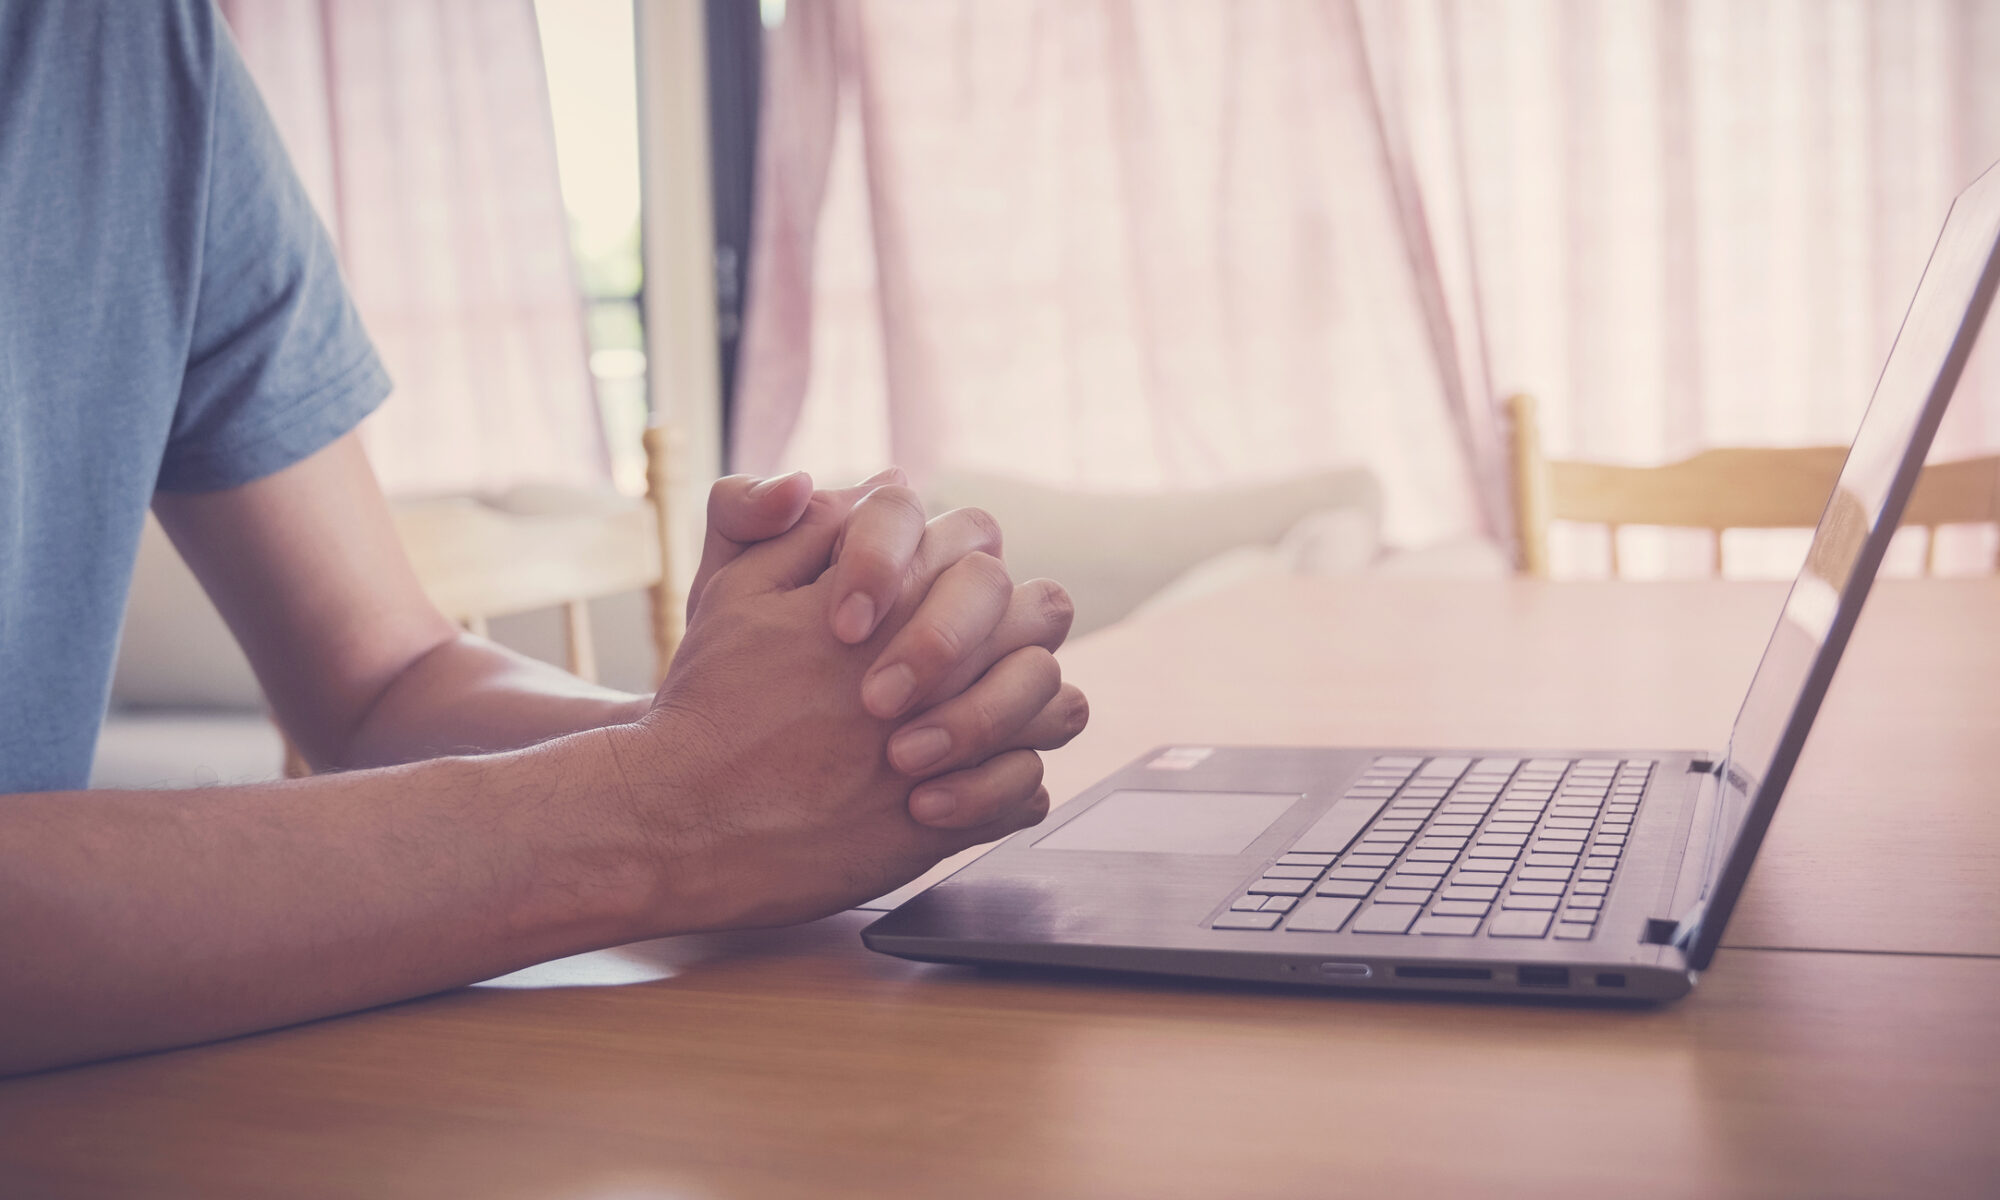 Praying hands with a laptop